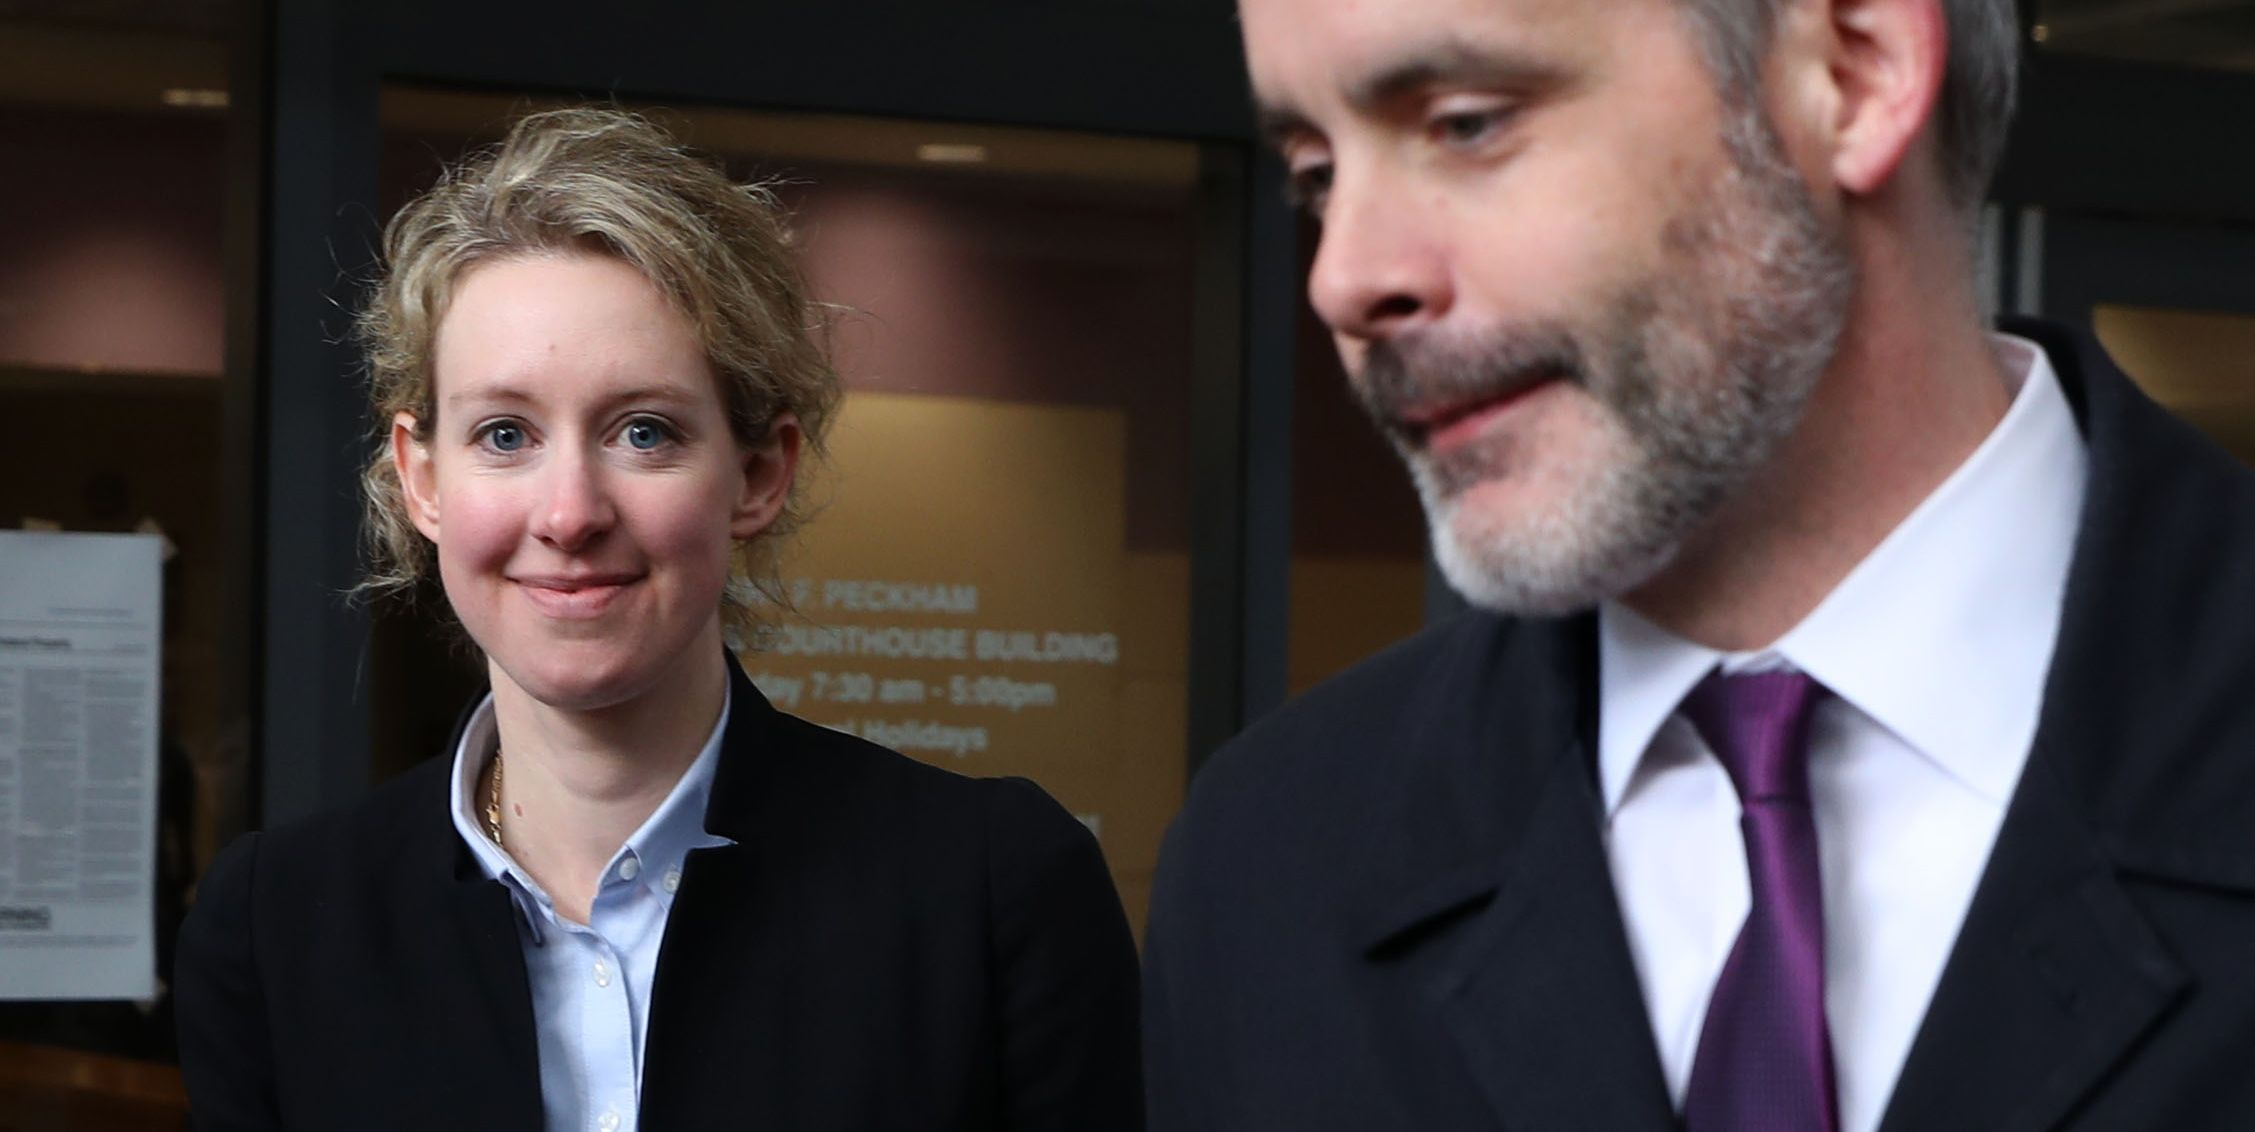 A new HBO documentary investigates the rise and collapse of Theranos founder Elizabeth Holmes.